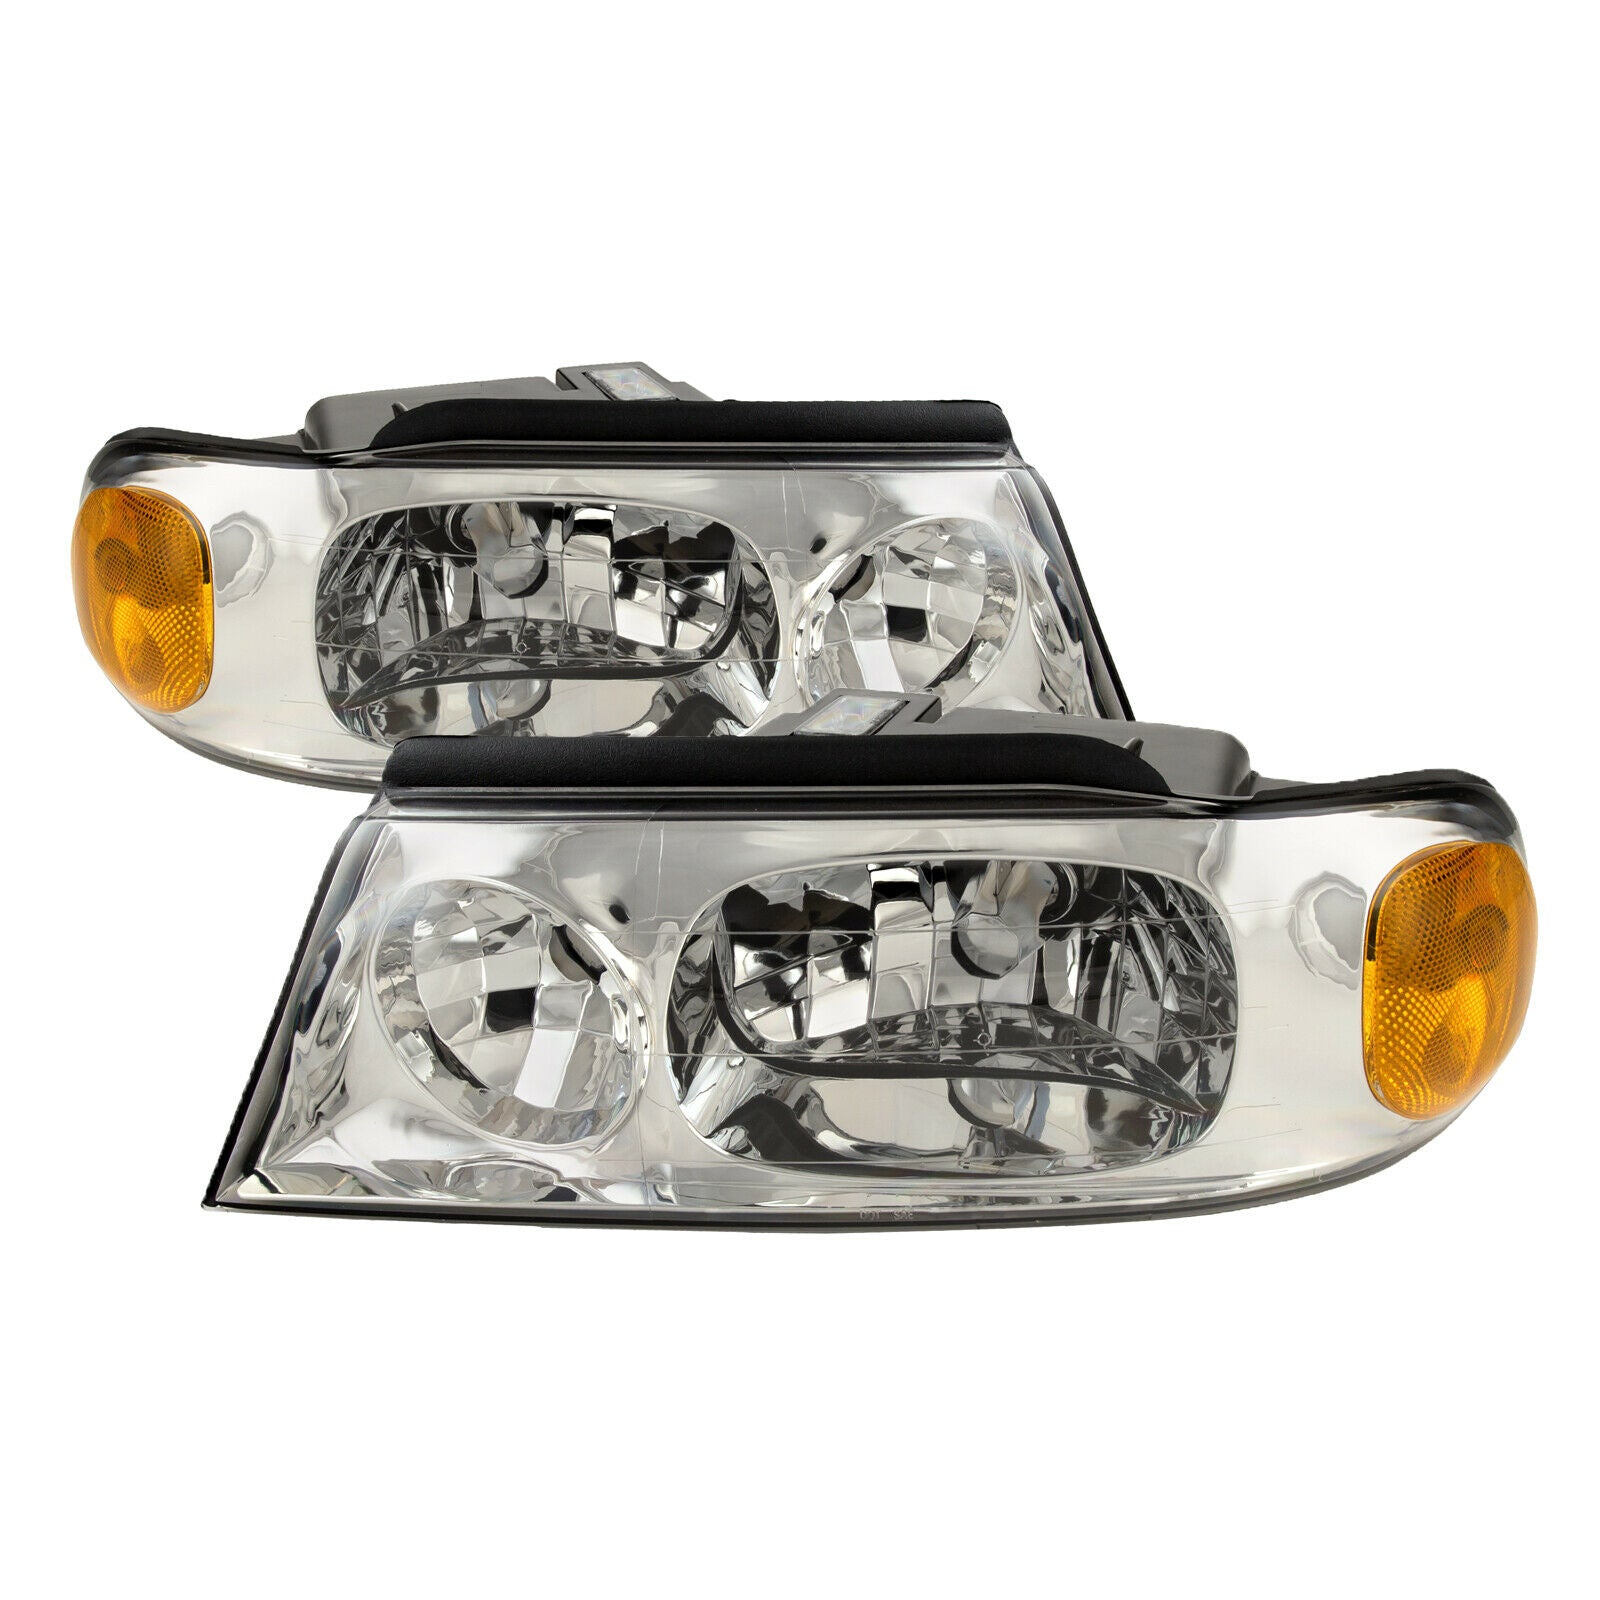 Fits Rexhall Rexair 2001-2005 Motorhome RV Left and Right Headlights Pair